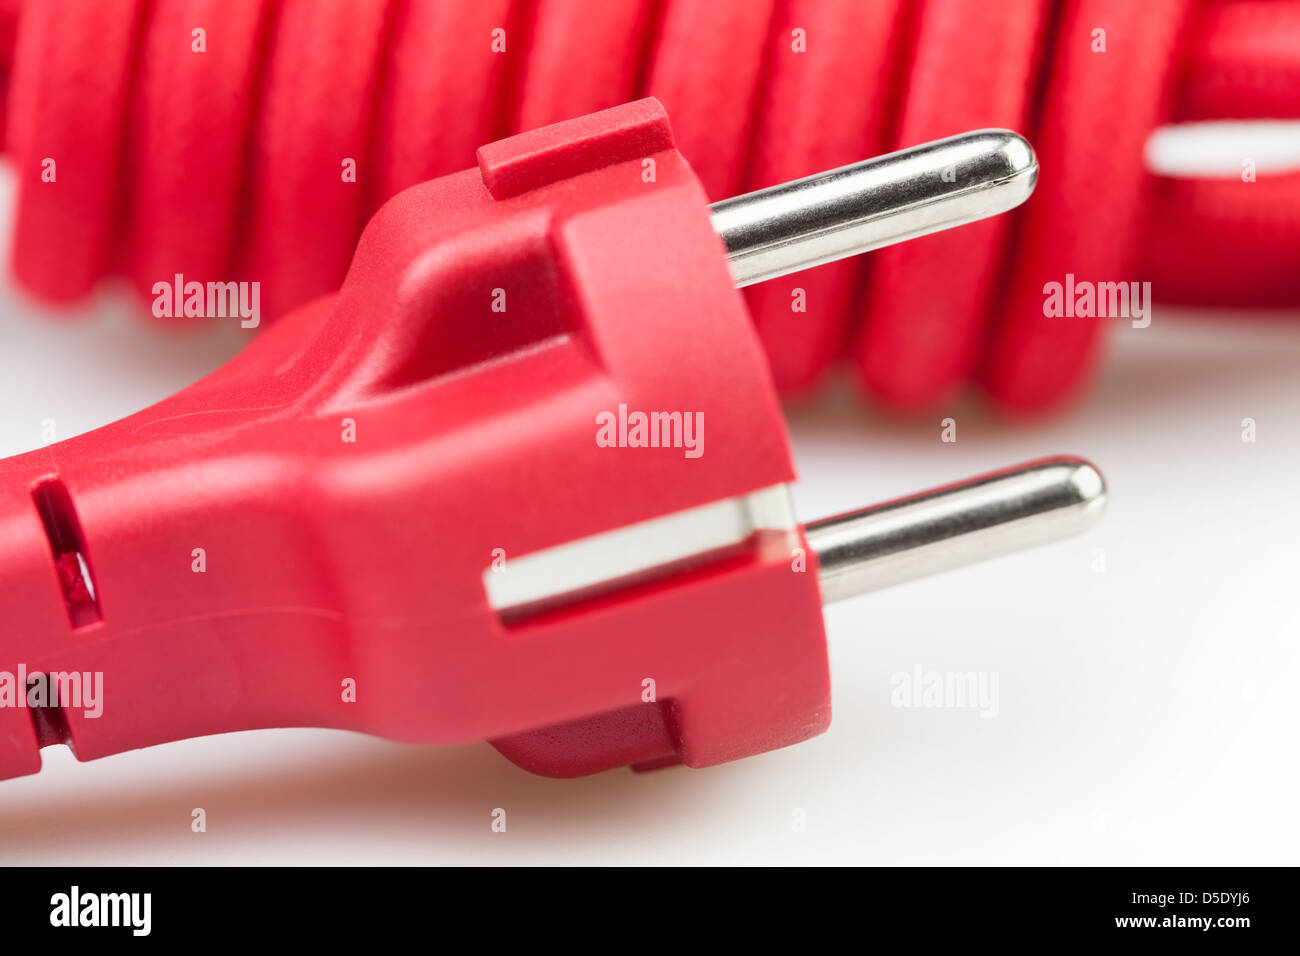 plug electric cord household full frame closeup - Stock Image